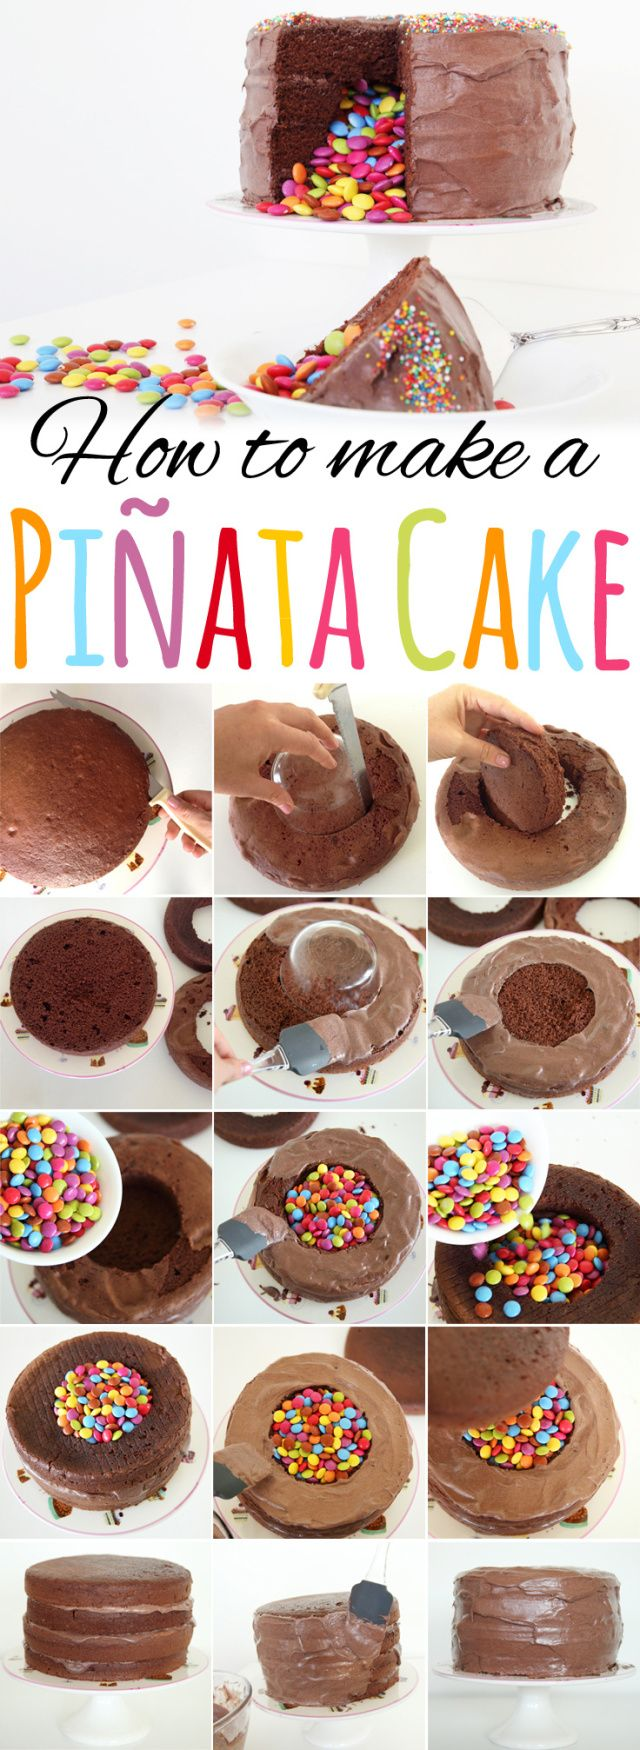 How to make a Piñata cake - Easy step-by-step instructions for a festive dessert! #pinata #pinatacake